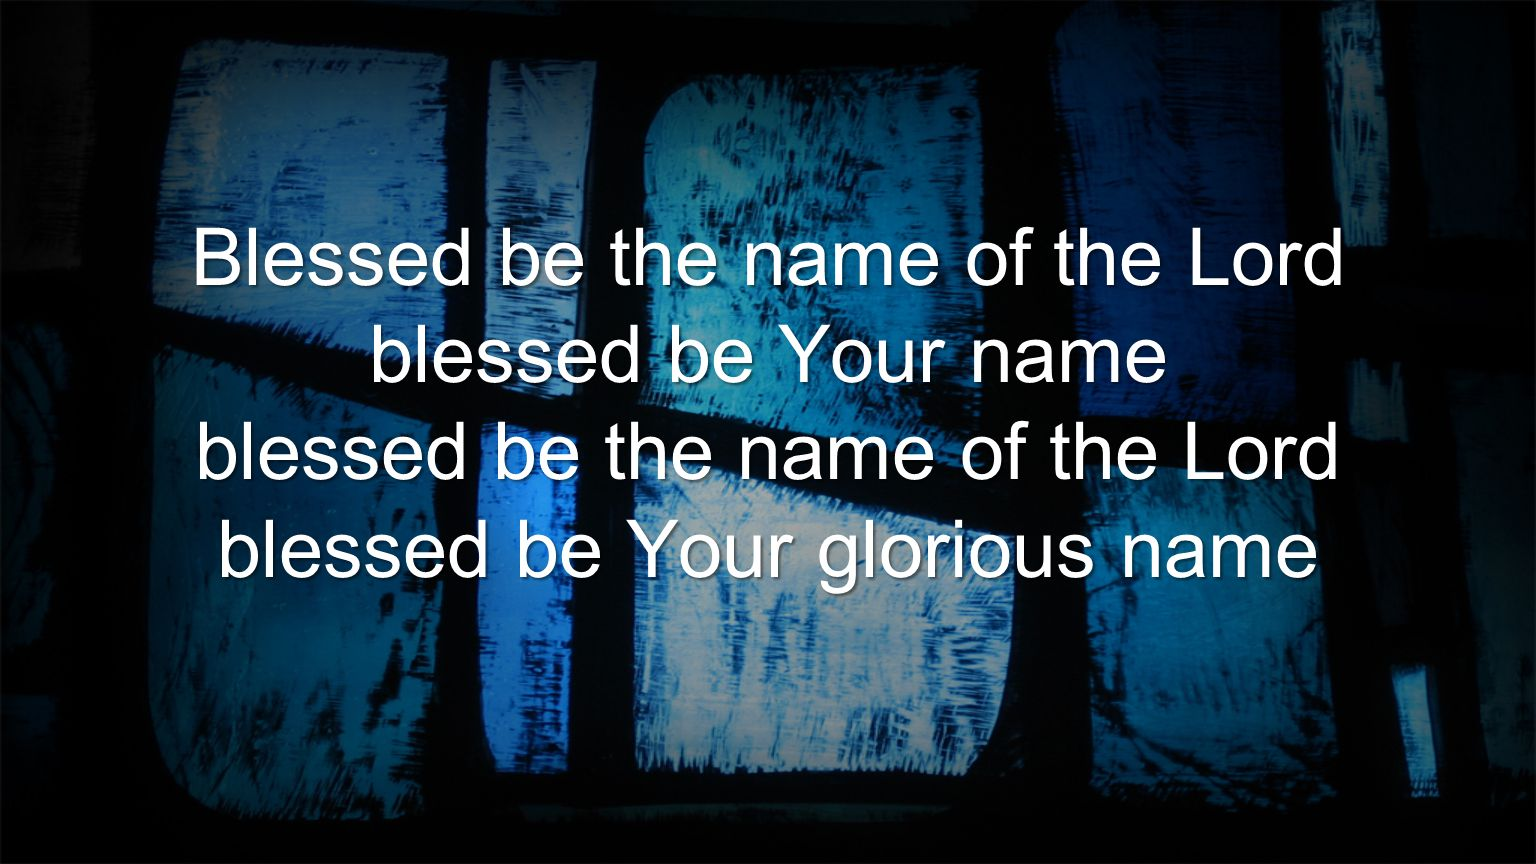 Blessed be the name of the Lord blessed be Your name blessed be the name of the Lord blessed be Your glorious name